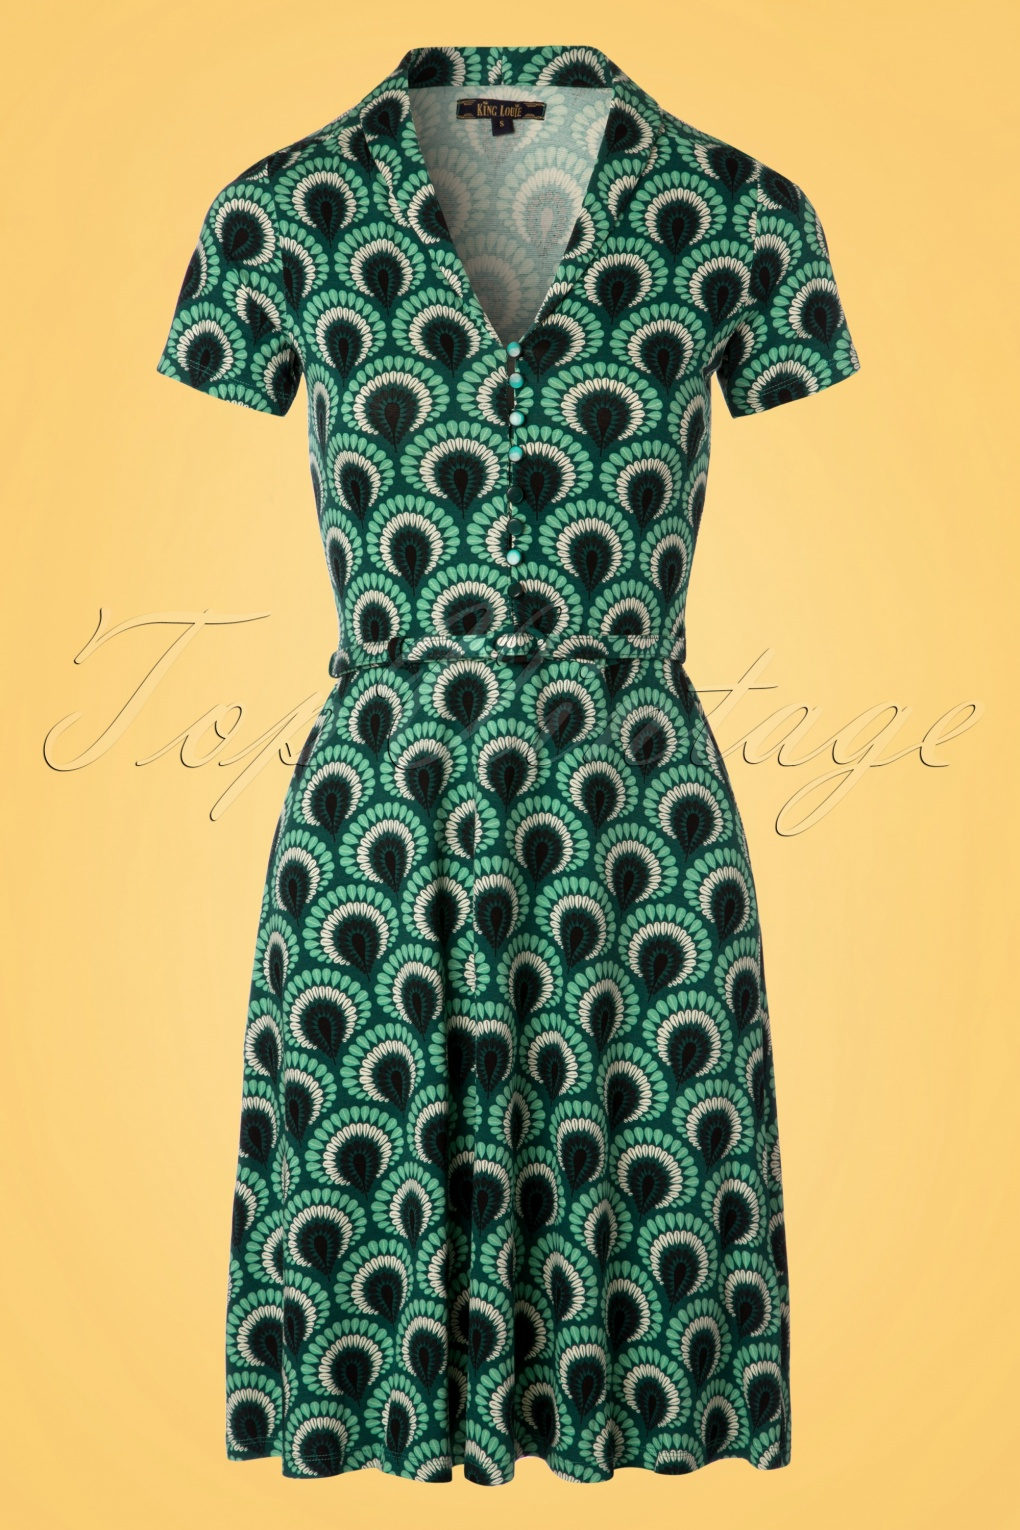 Plus Size Vintage Dresses, Plus Size Retro Dresses 60s Emmy Peacock Dress in Rock Green £88.52 AT vintagedancer.com